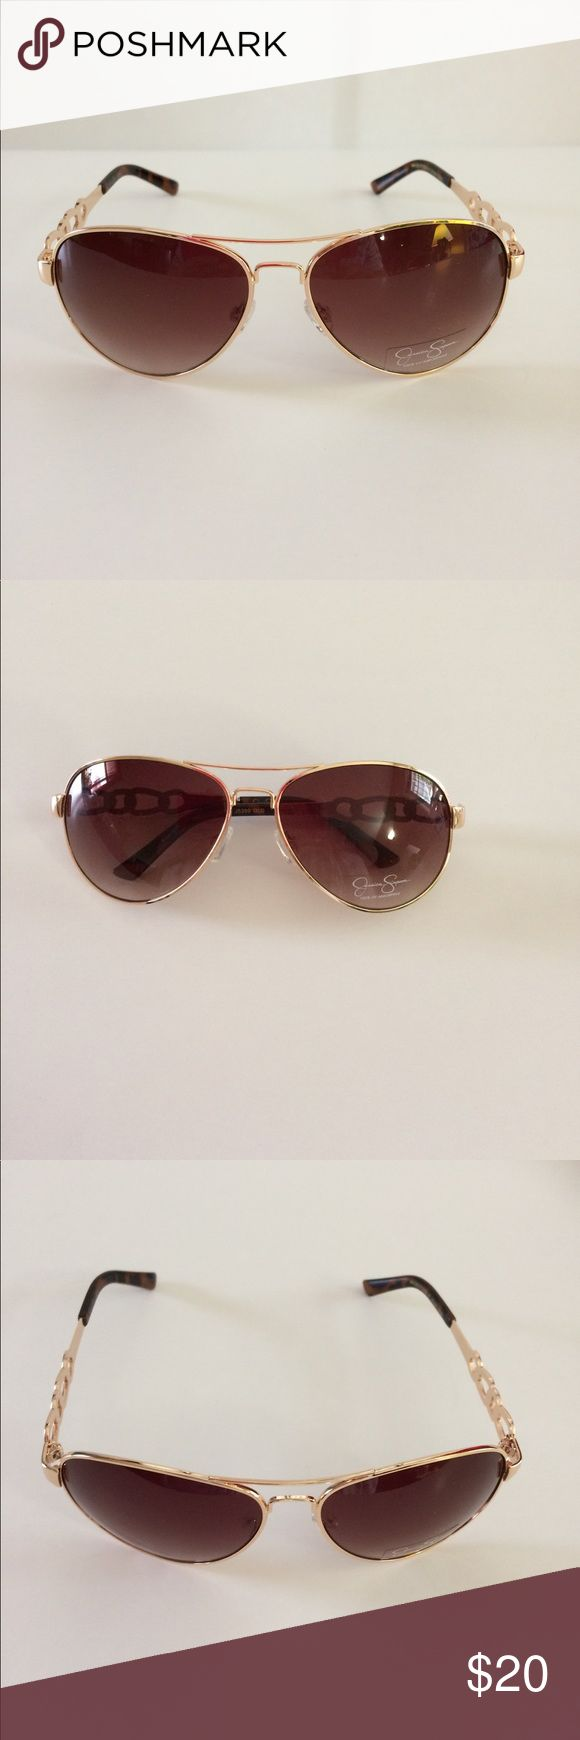 🆕 Jessica Simpson Aviator Chain-link Sunglasses. 🌟Jessica Simpson Aviator Chain-link Design Sunglasses.   Gradient lens.   NO CASE  100% UV Protection   Offers welcome   Thanks for stopping by. Jessica Simpson Accessories Sunglasses